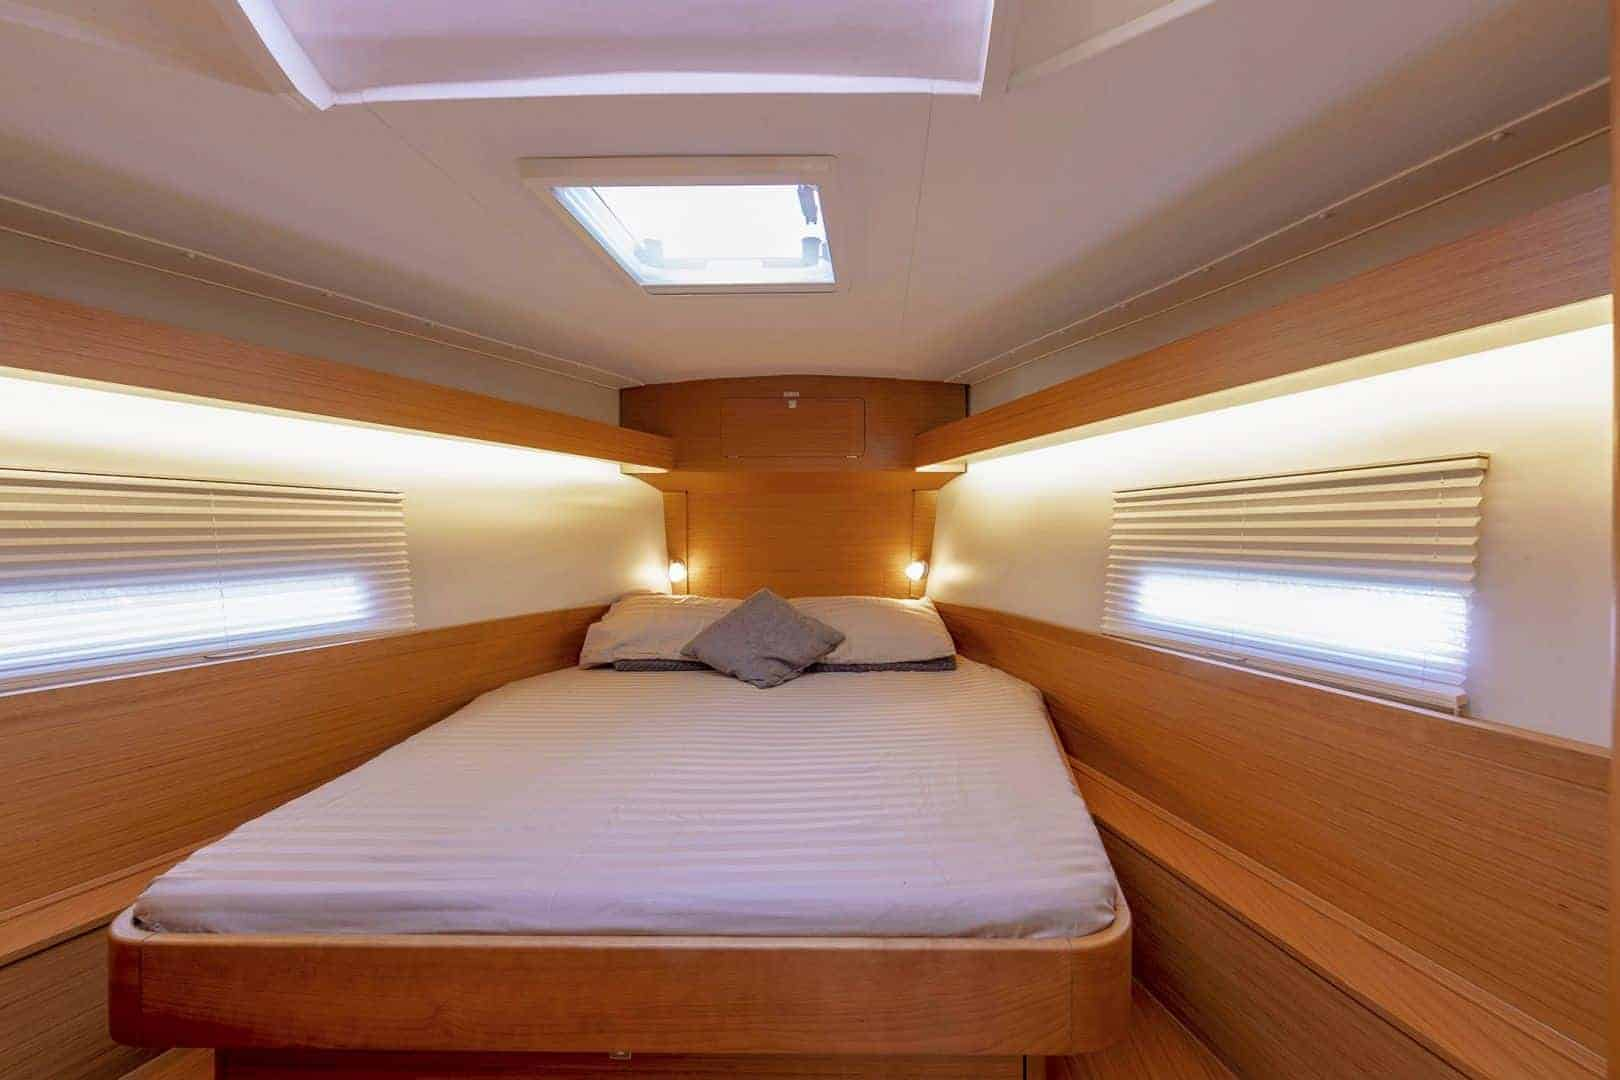 Soothing cabin with a nice bed in it with windows on both sides and in the ceiling above the bed